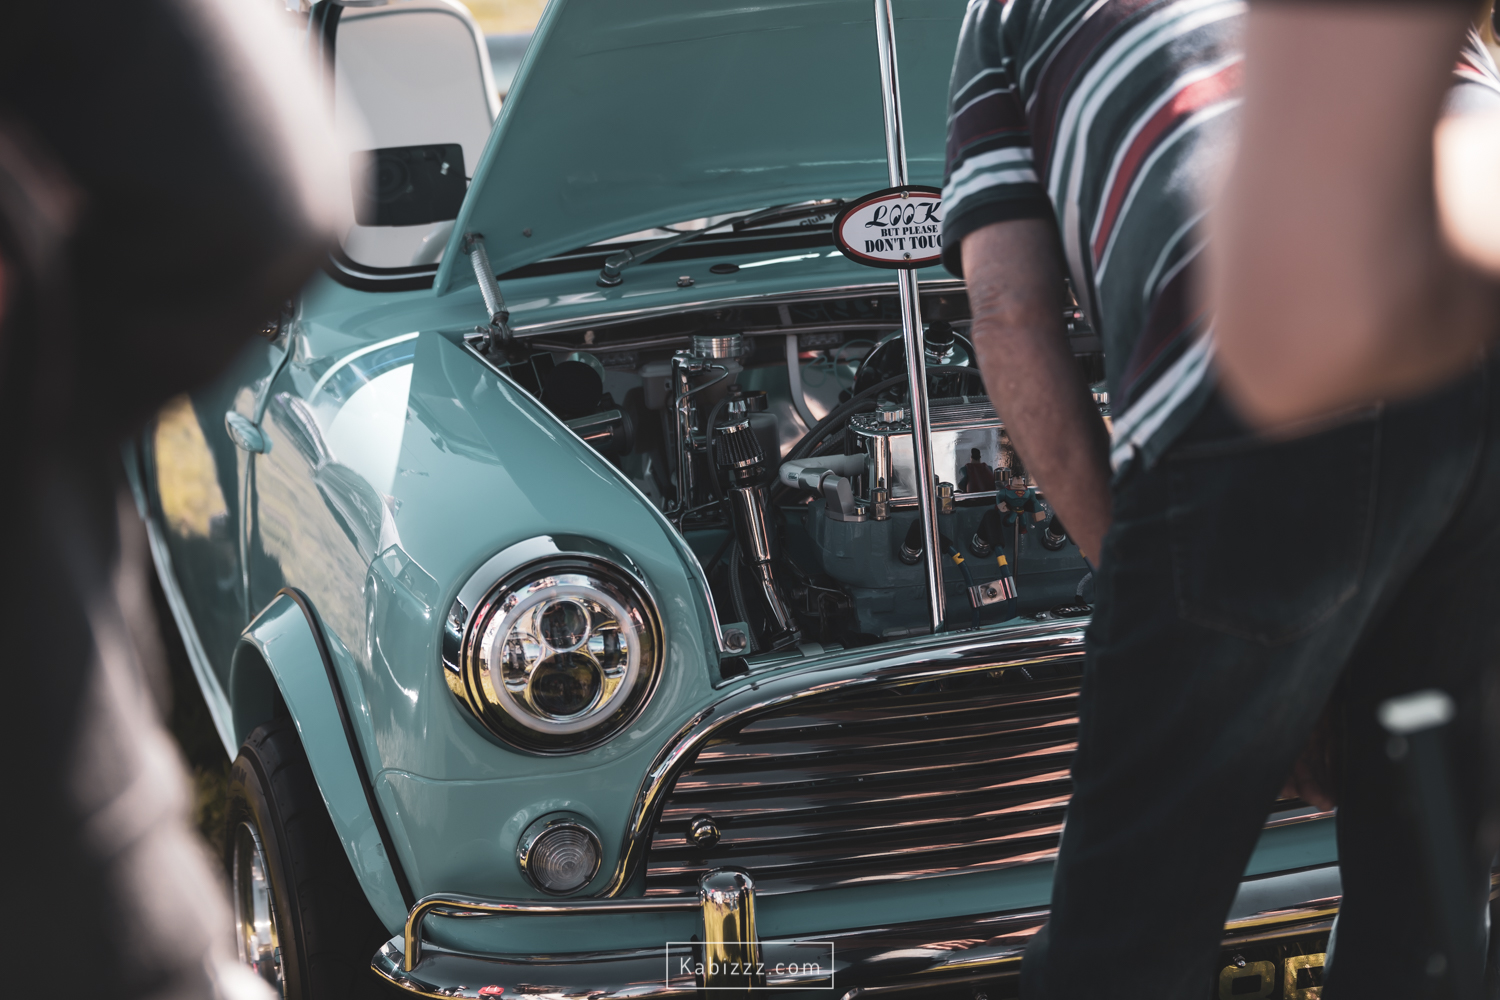 Kabizzz_Photography_Stirling_District_Classic _cars-28.jpg